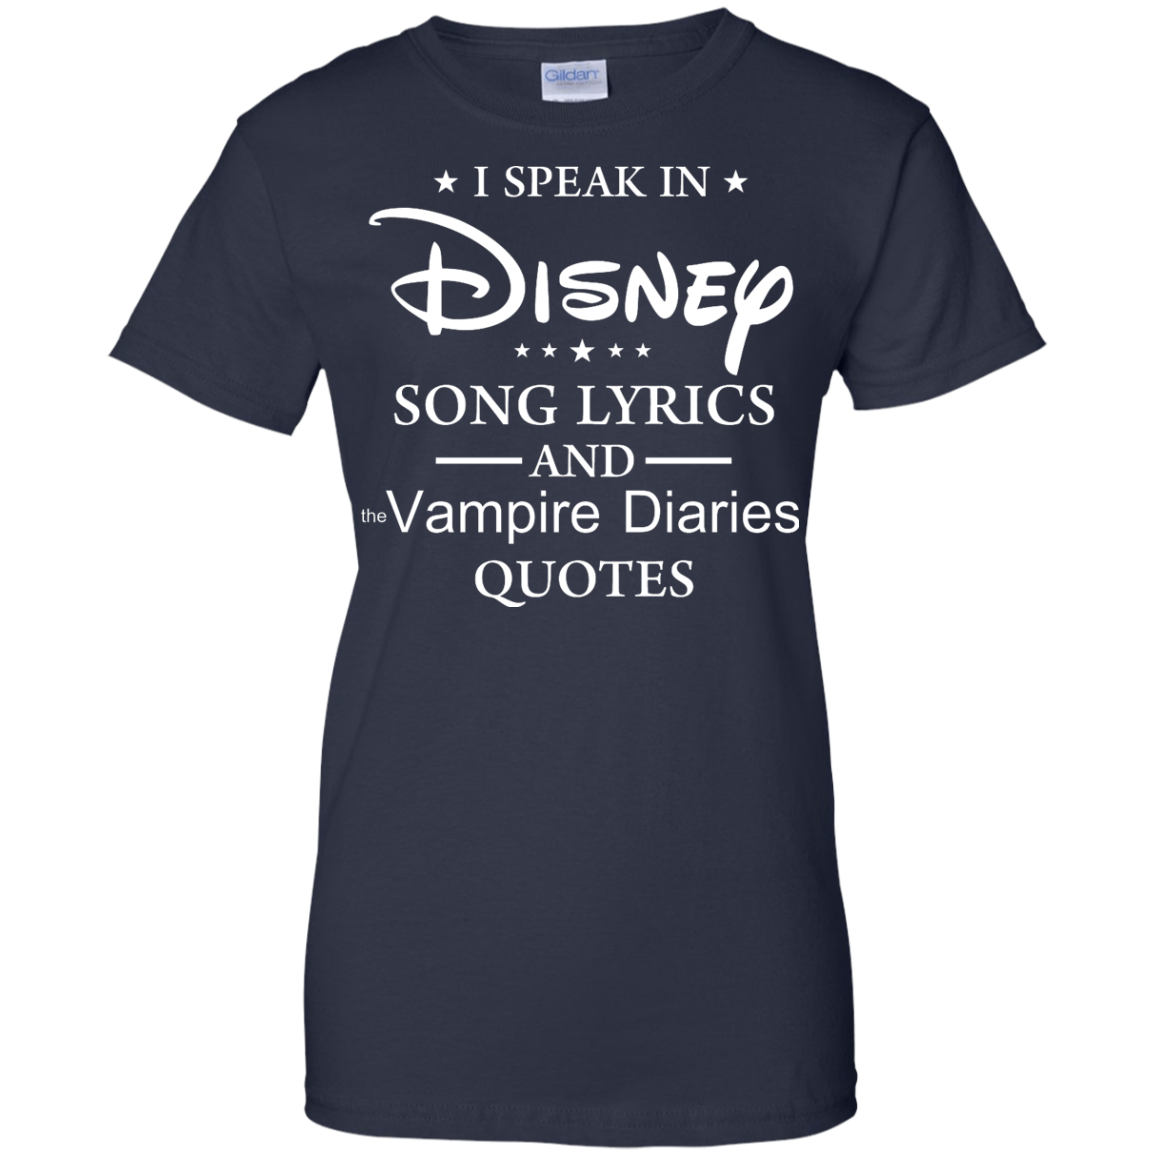 I Speak In Disney Song Lyrics And The Vampire Diaries Quotes T Shirt